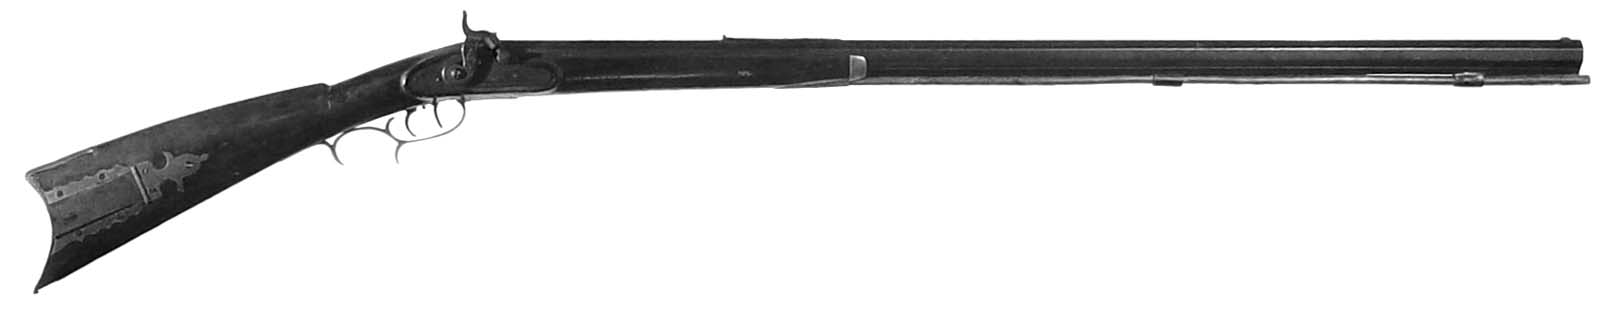 Indian Rifle